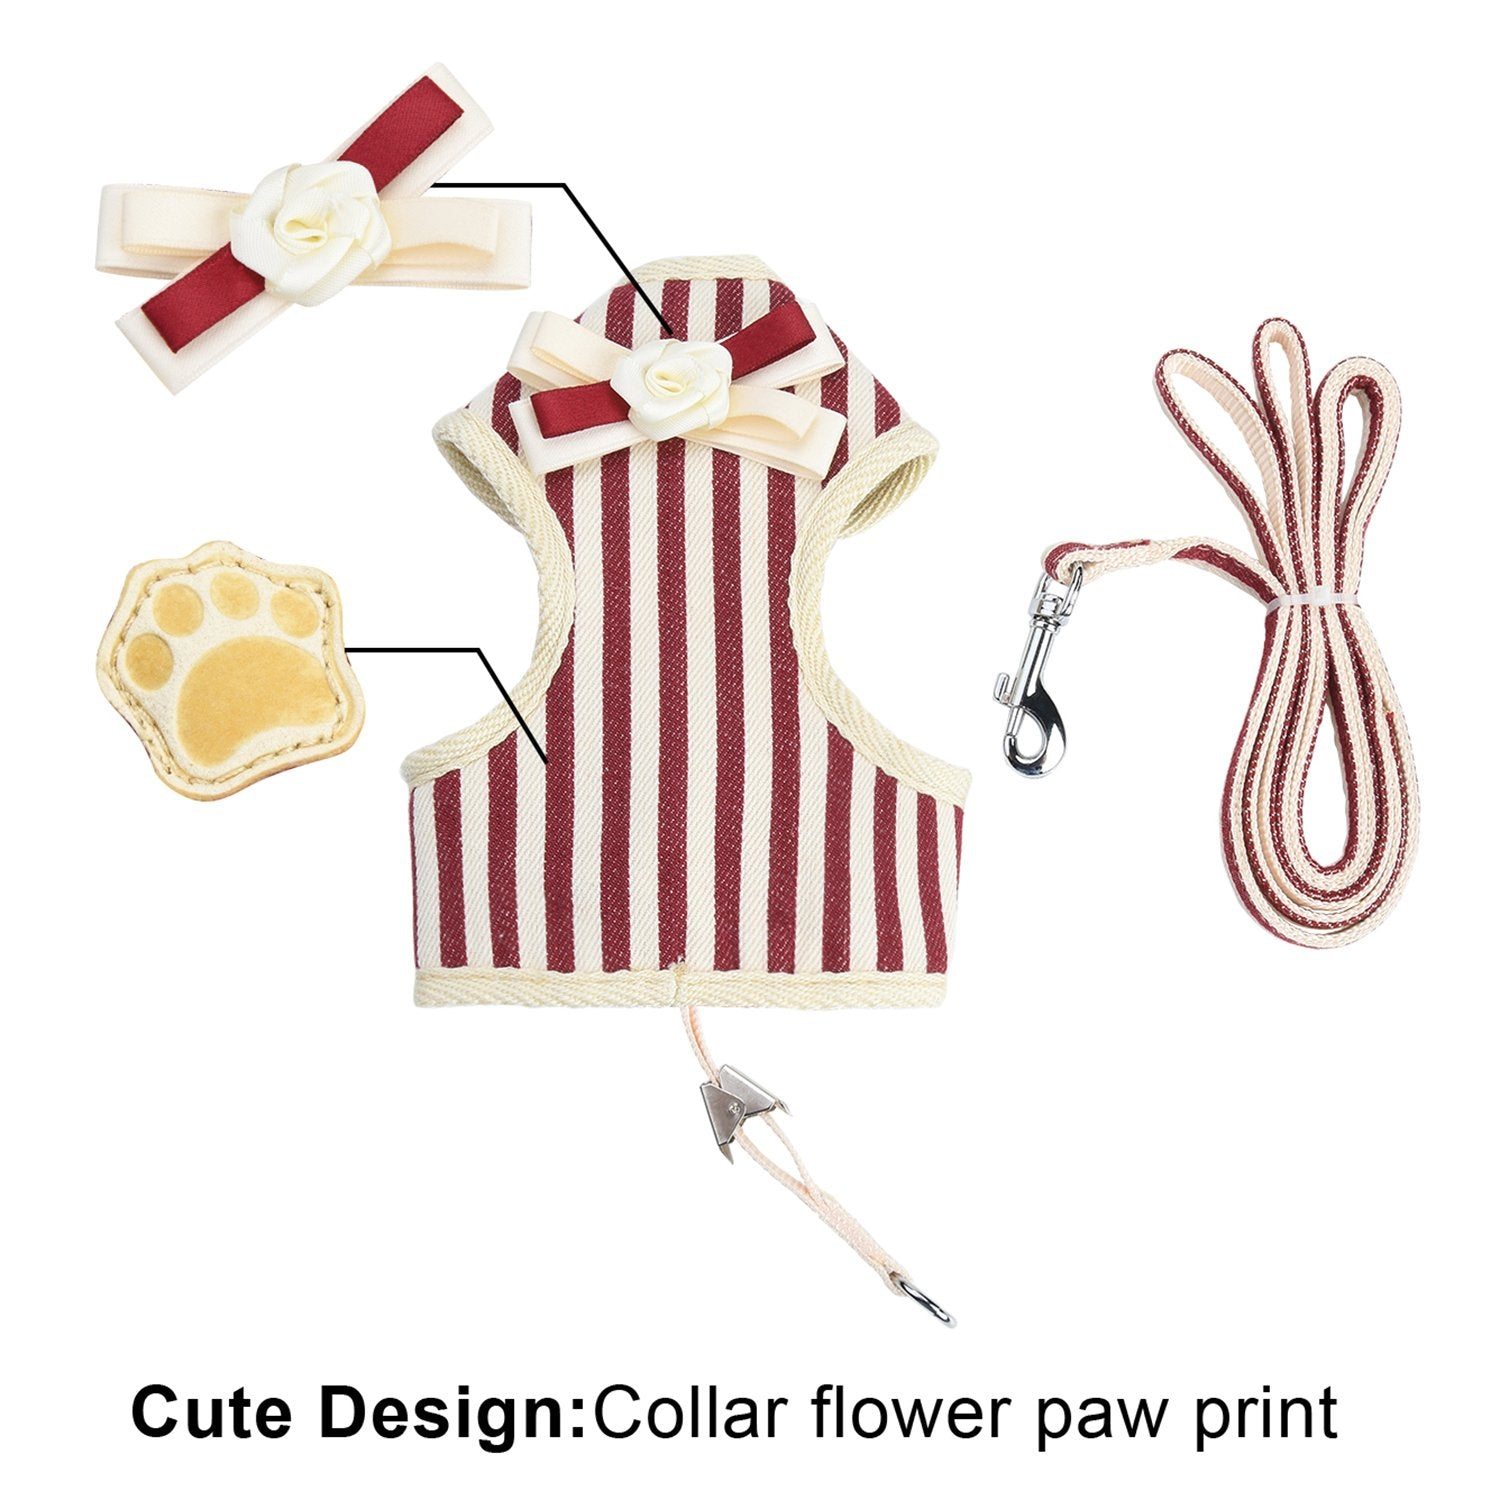 CAT HARNESS WITH PADDED VEST